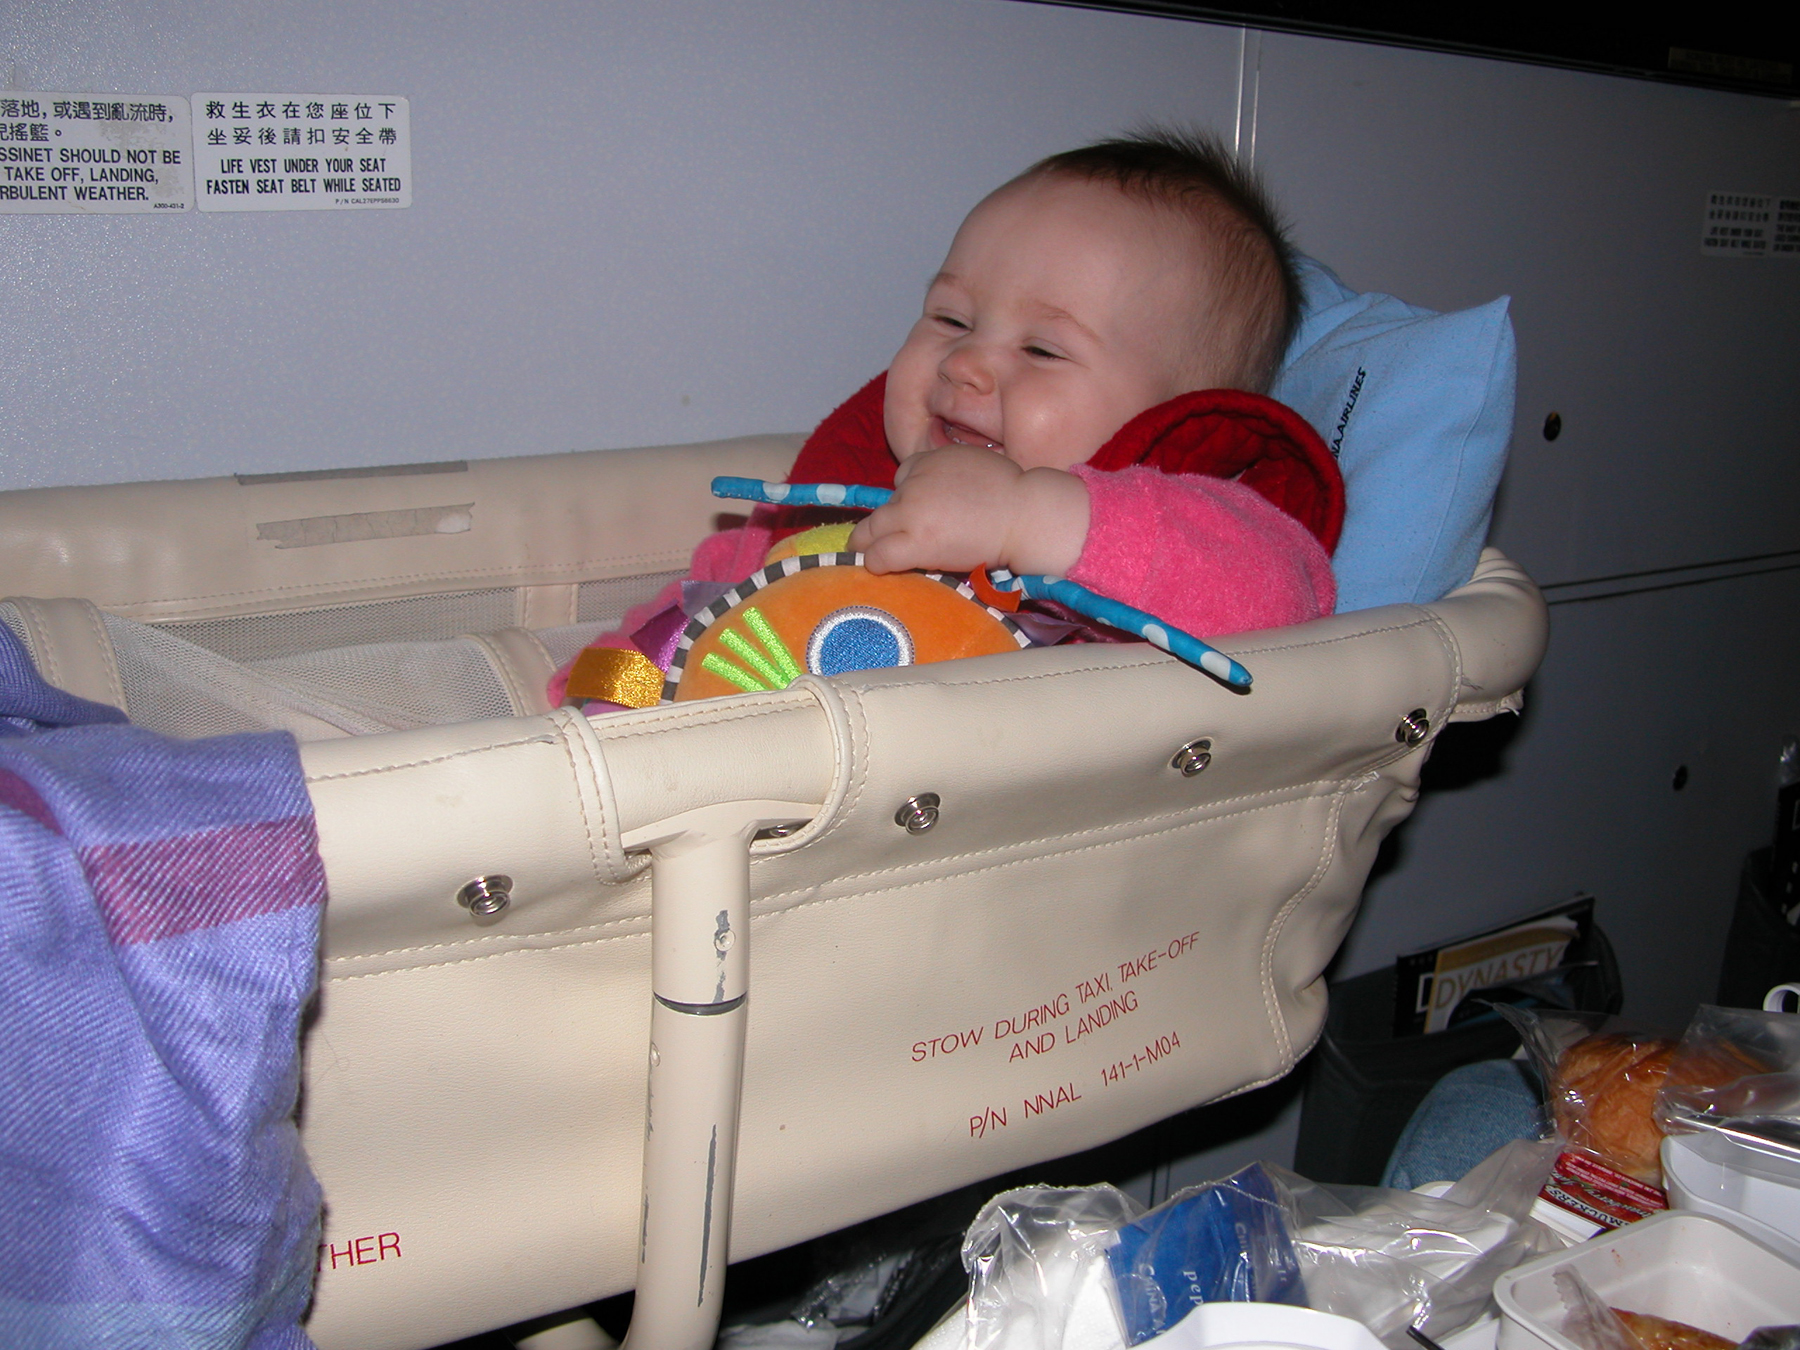 Baby bed airplane - The Author Shelly Rivoli S Daughter Enjoying An Airplane Bassinet During A Flight With China Airlines Baby Rivoli In China Airlines Airplane Bassinet